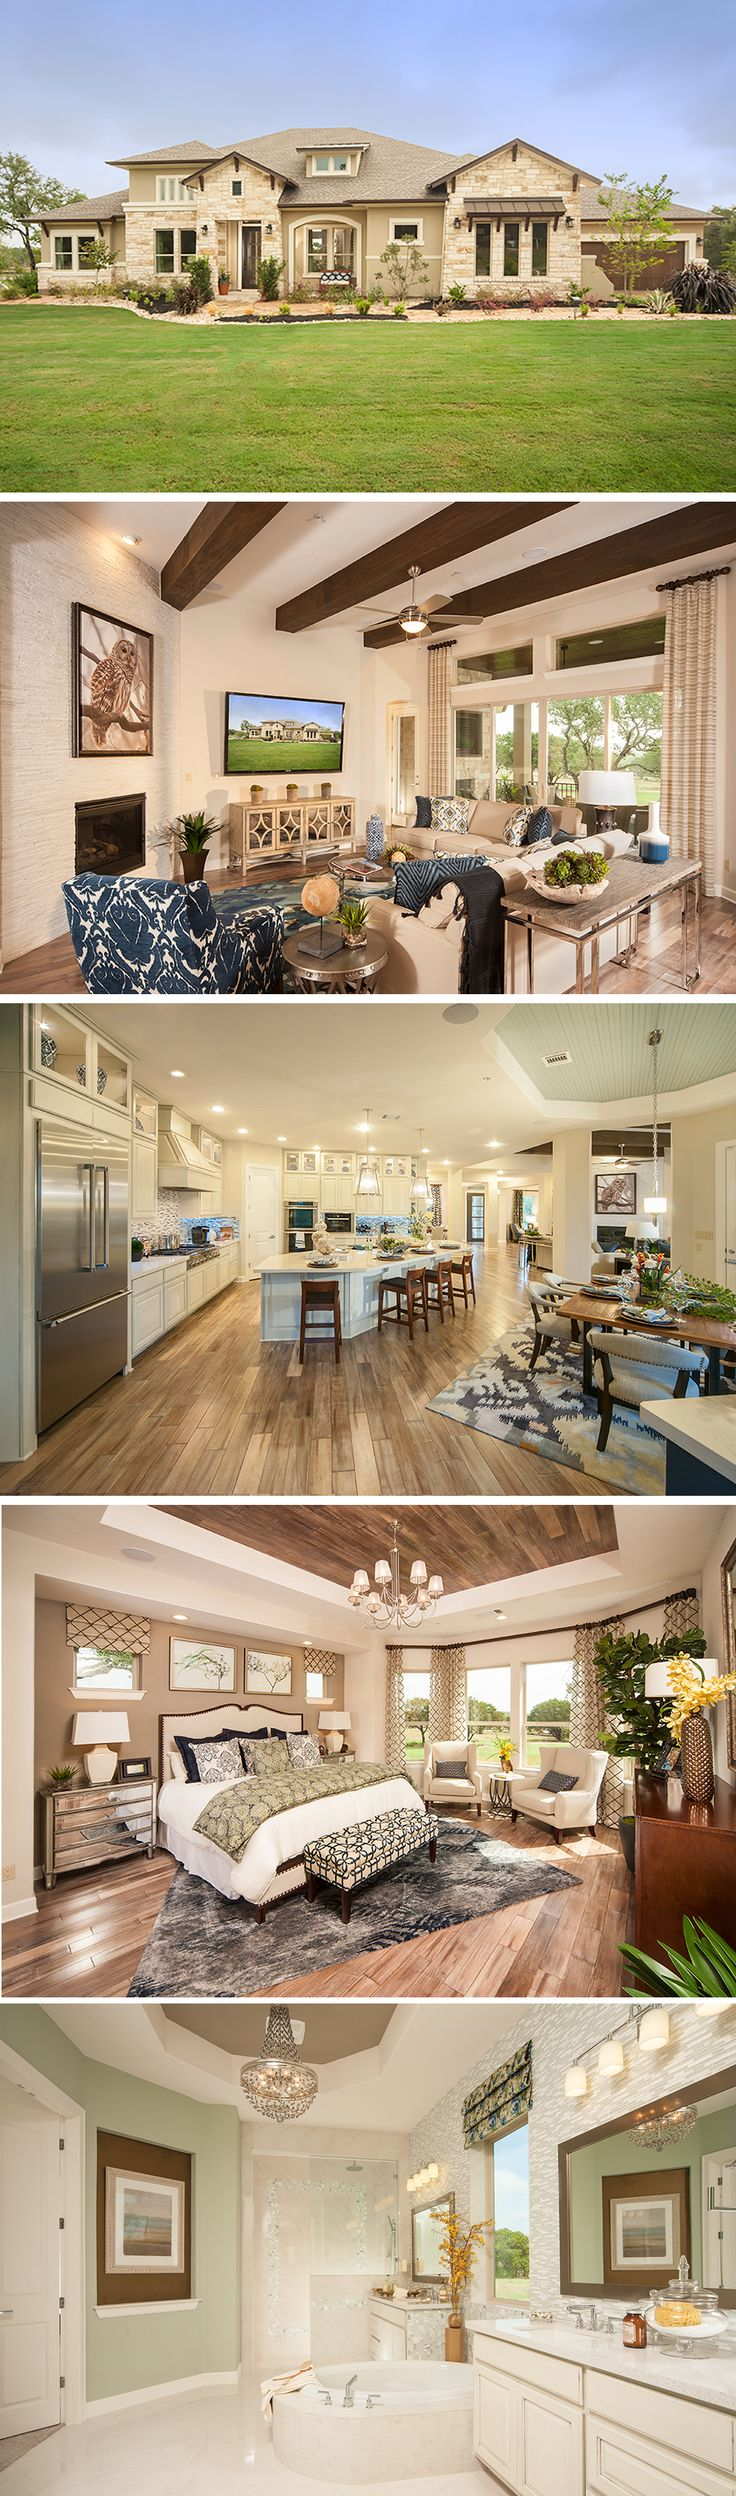 best 25 open floor plans ideas on pinterest open floor house the maidstone by david weekley homes in preserve at thomas springs is a luxurious floor plan